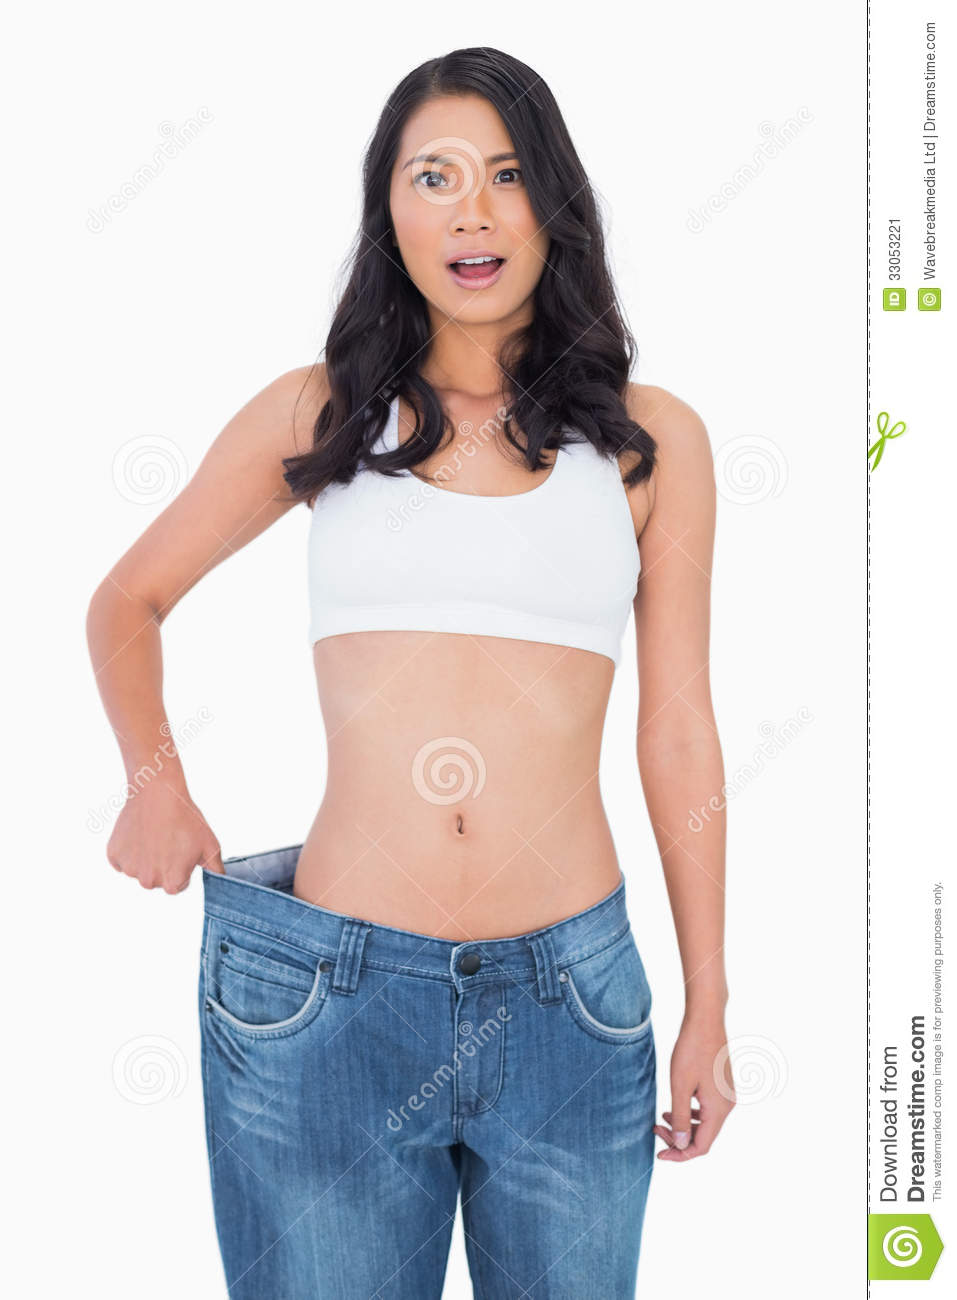 Background image too big - Surprised Woman Wearing Too Big Jeans Stock Image